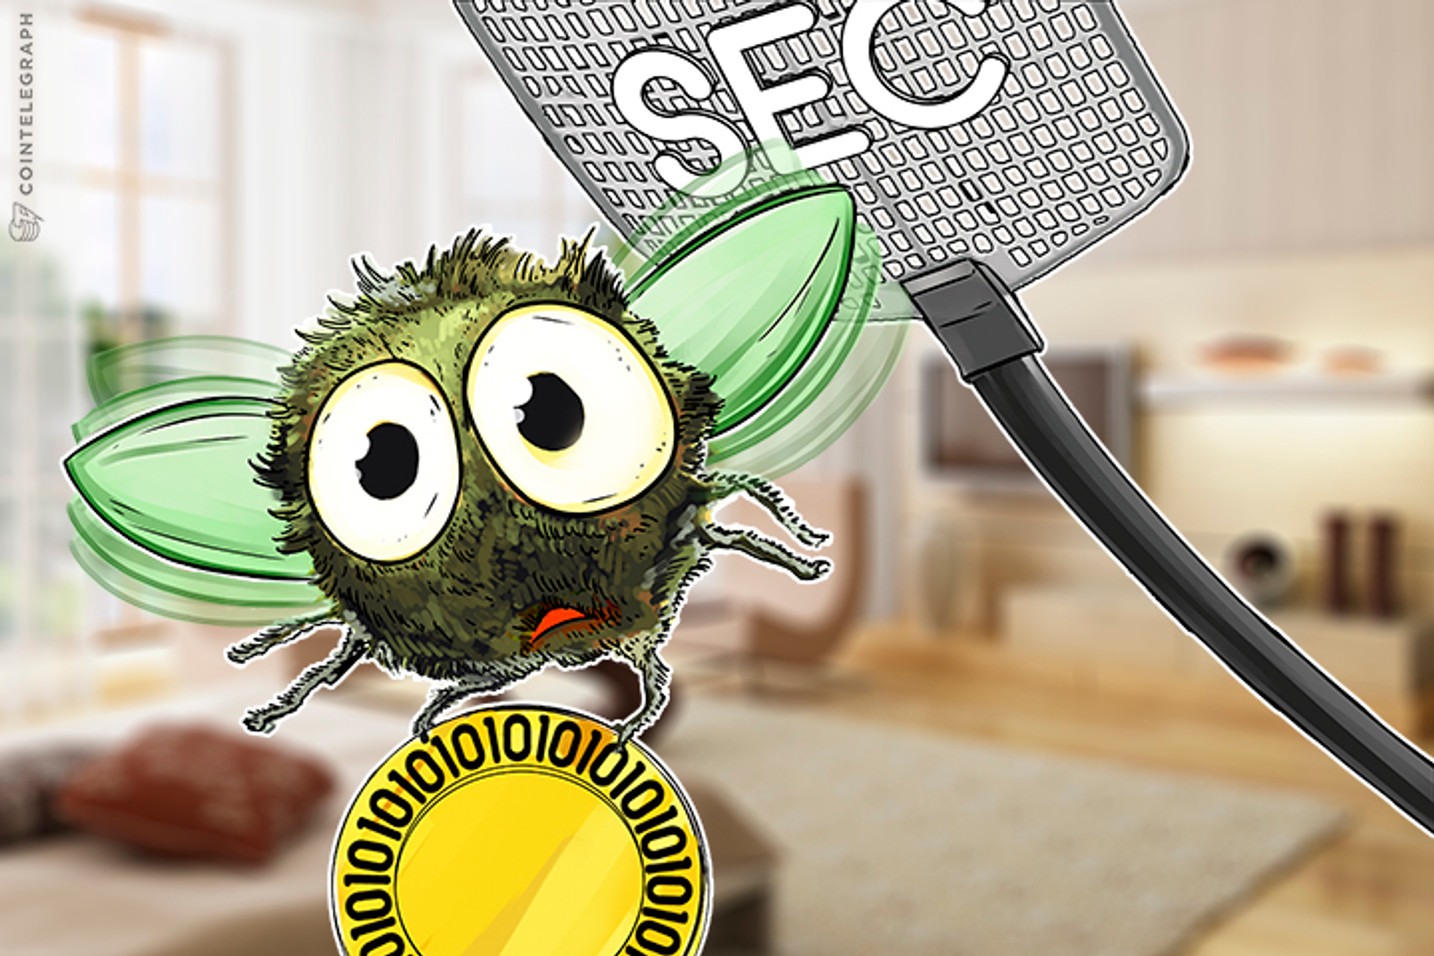 SEC Warns Celebrity-Endorsed Initial Coin Offerings Could Be Illegal